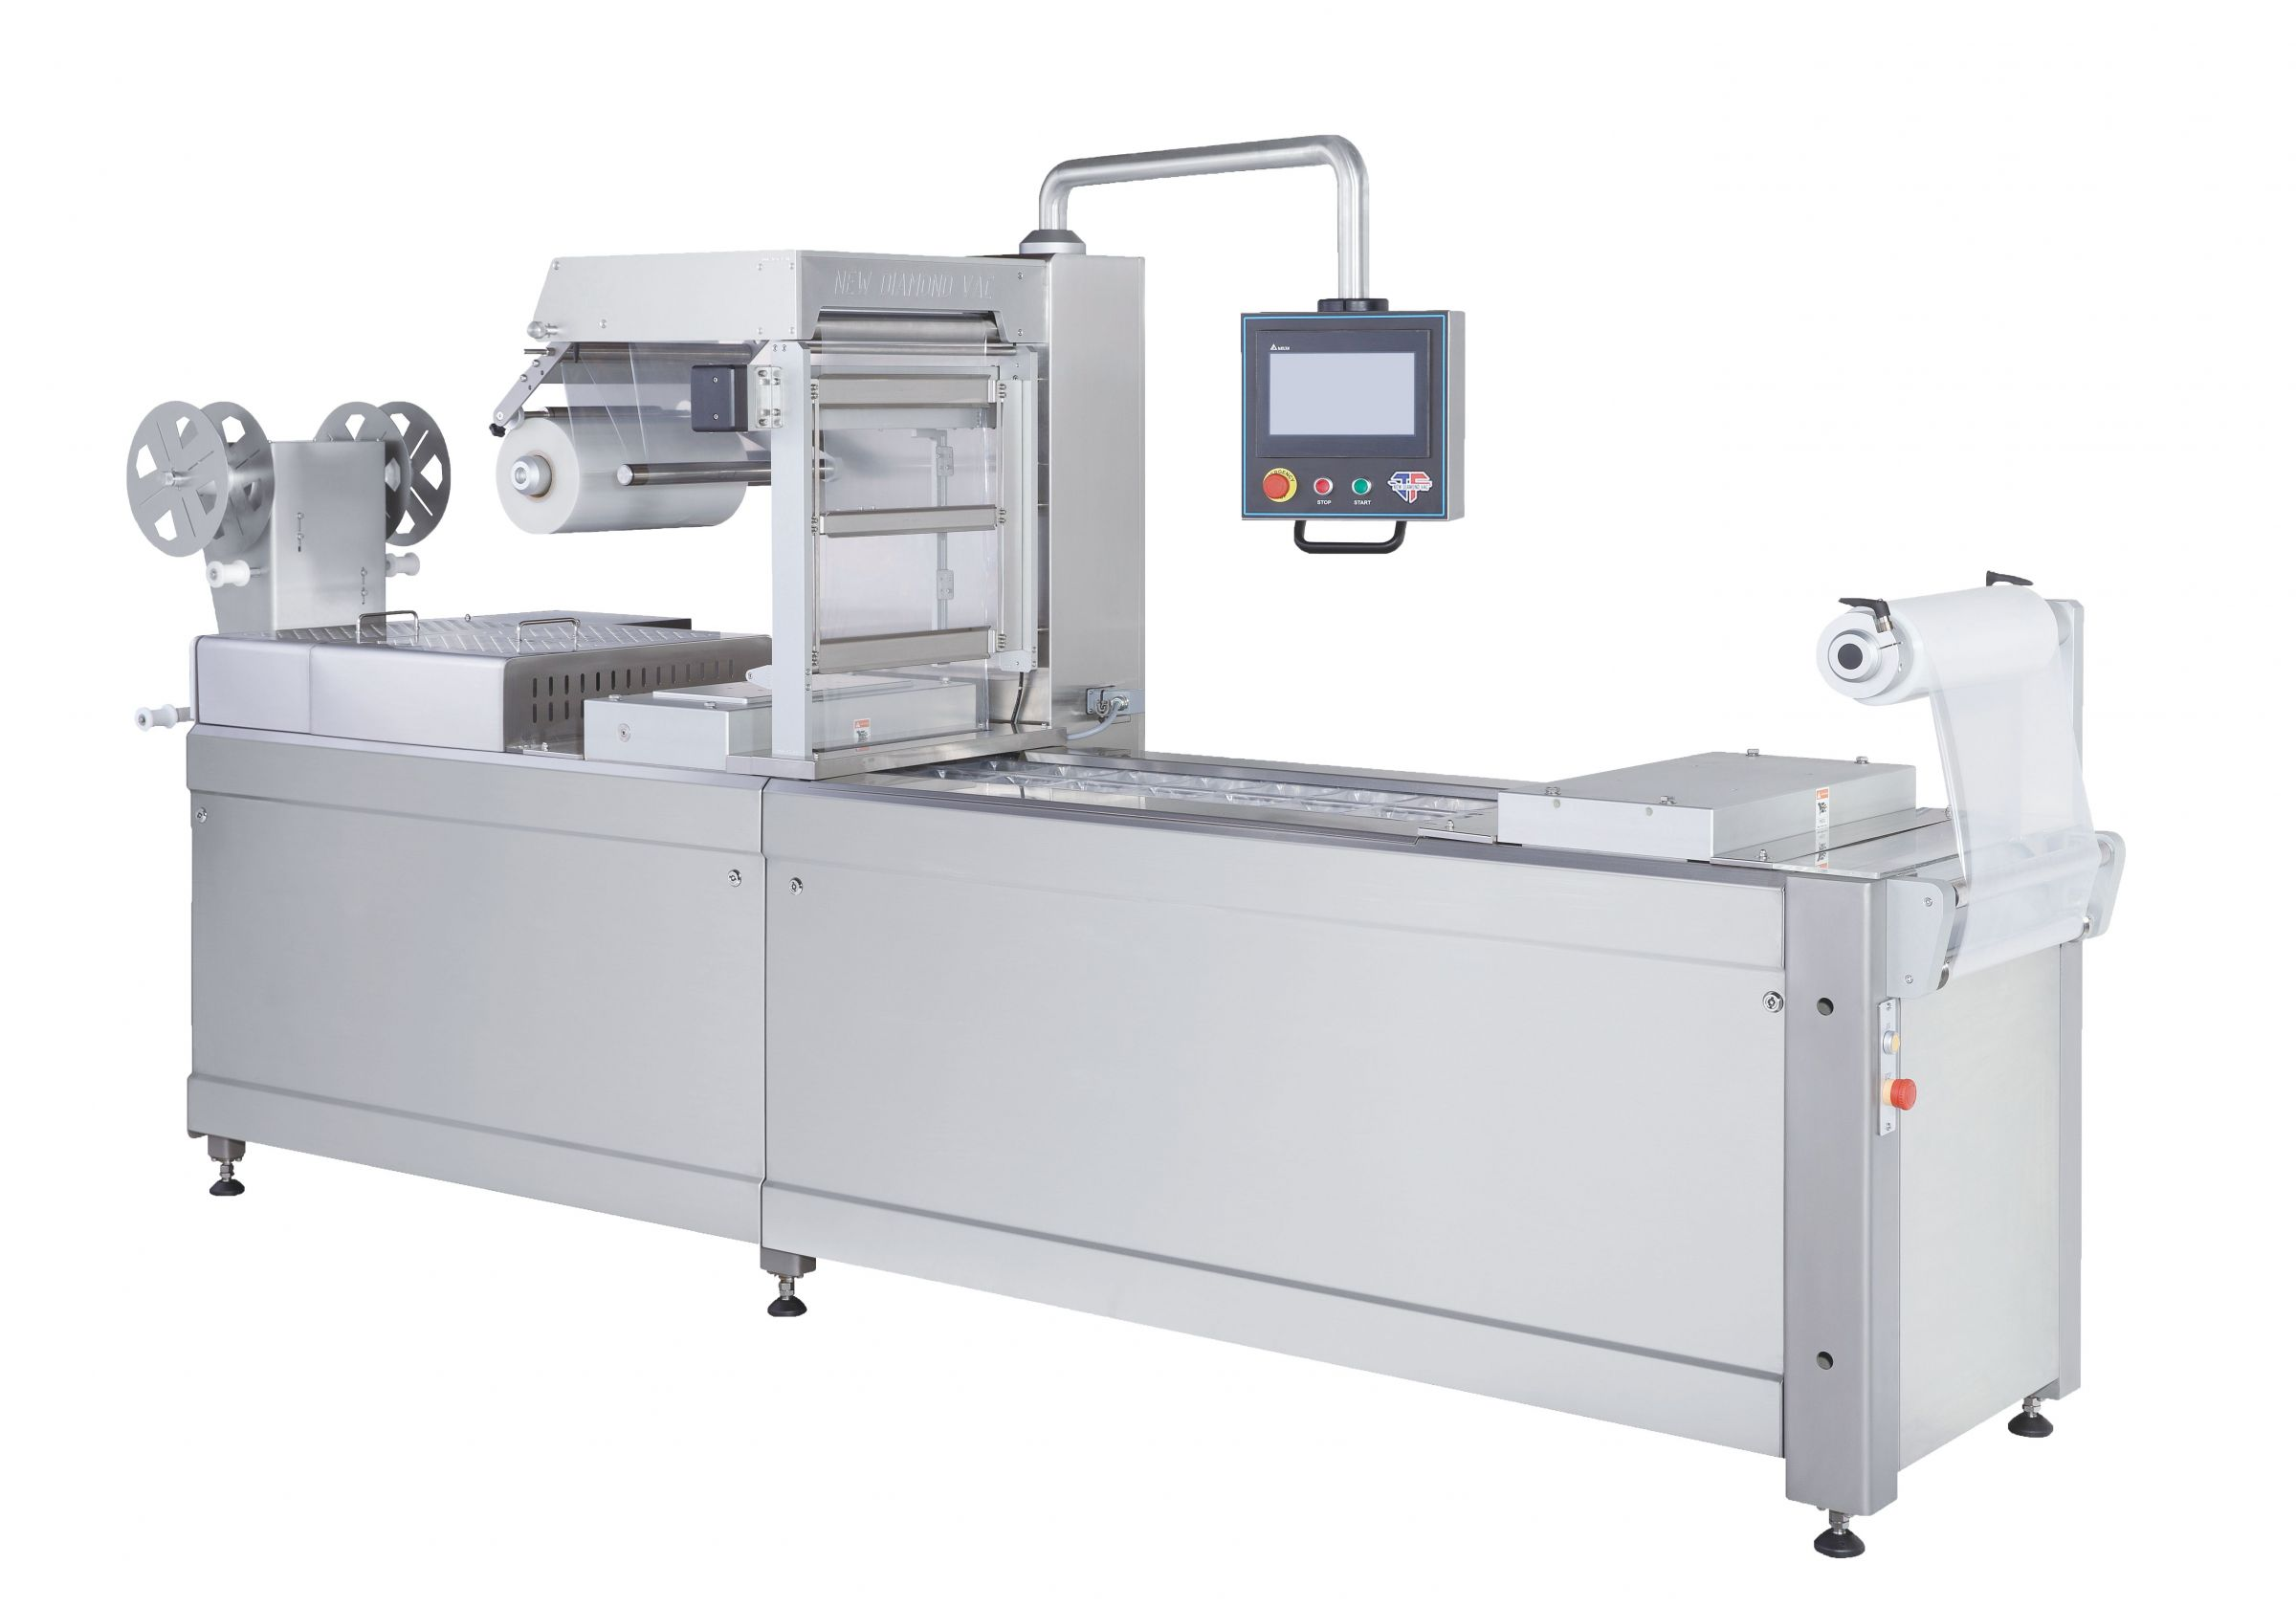 Thermoforming Packaging Machine - B420. Thermoforming Packaging Machine